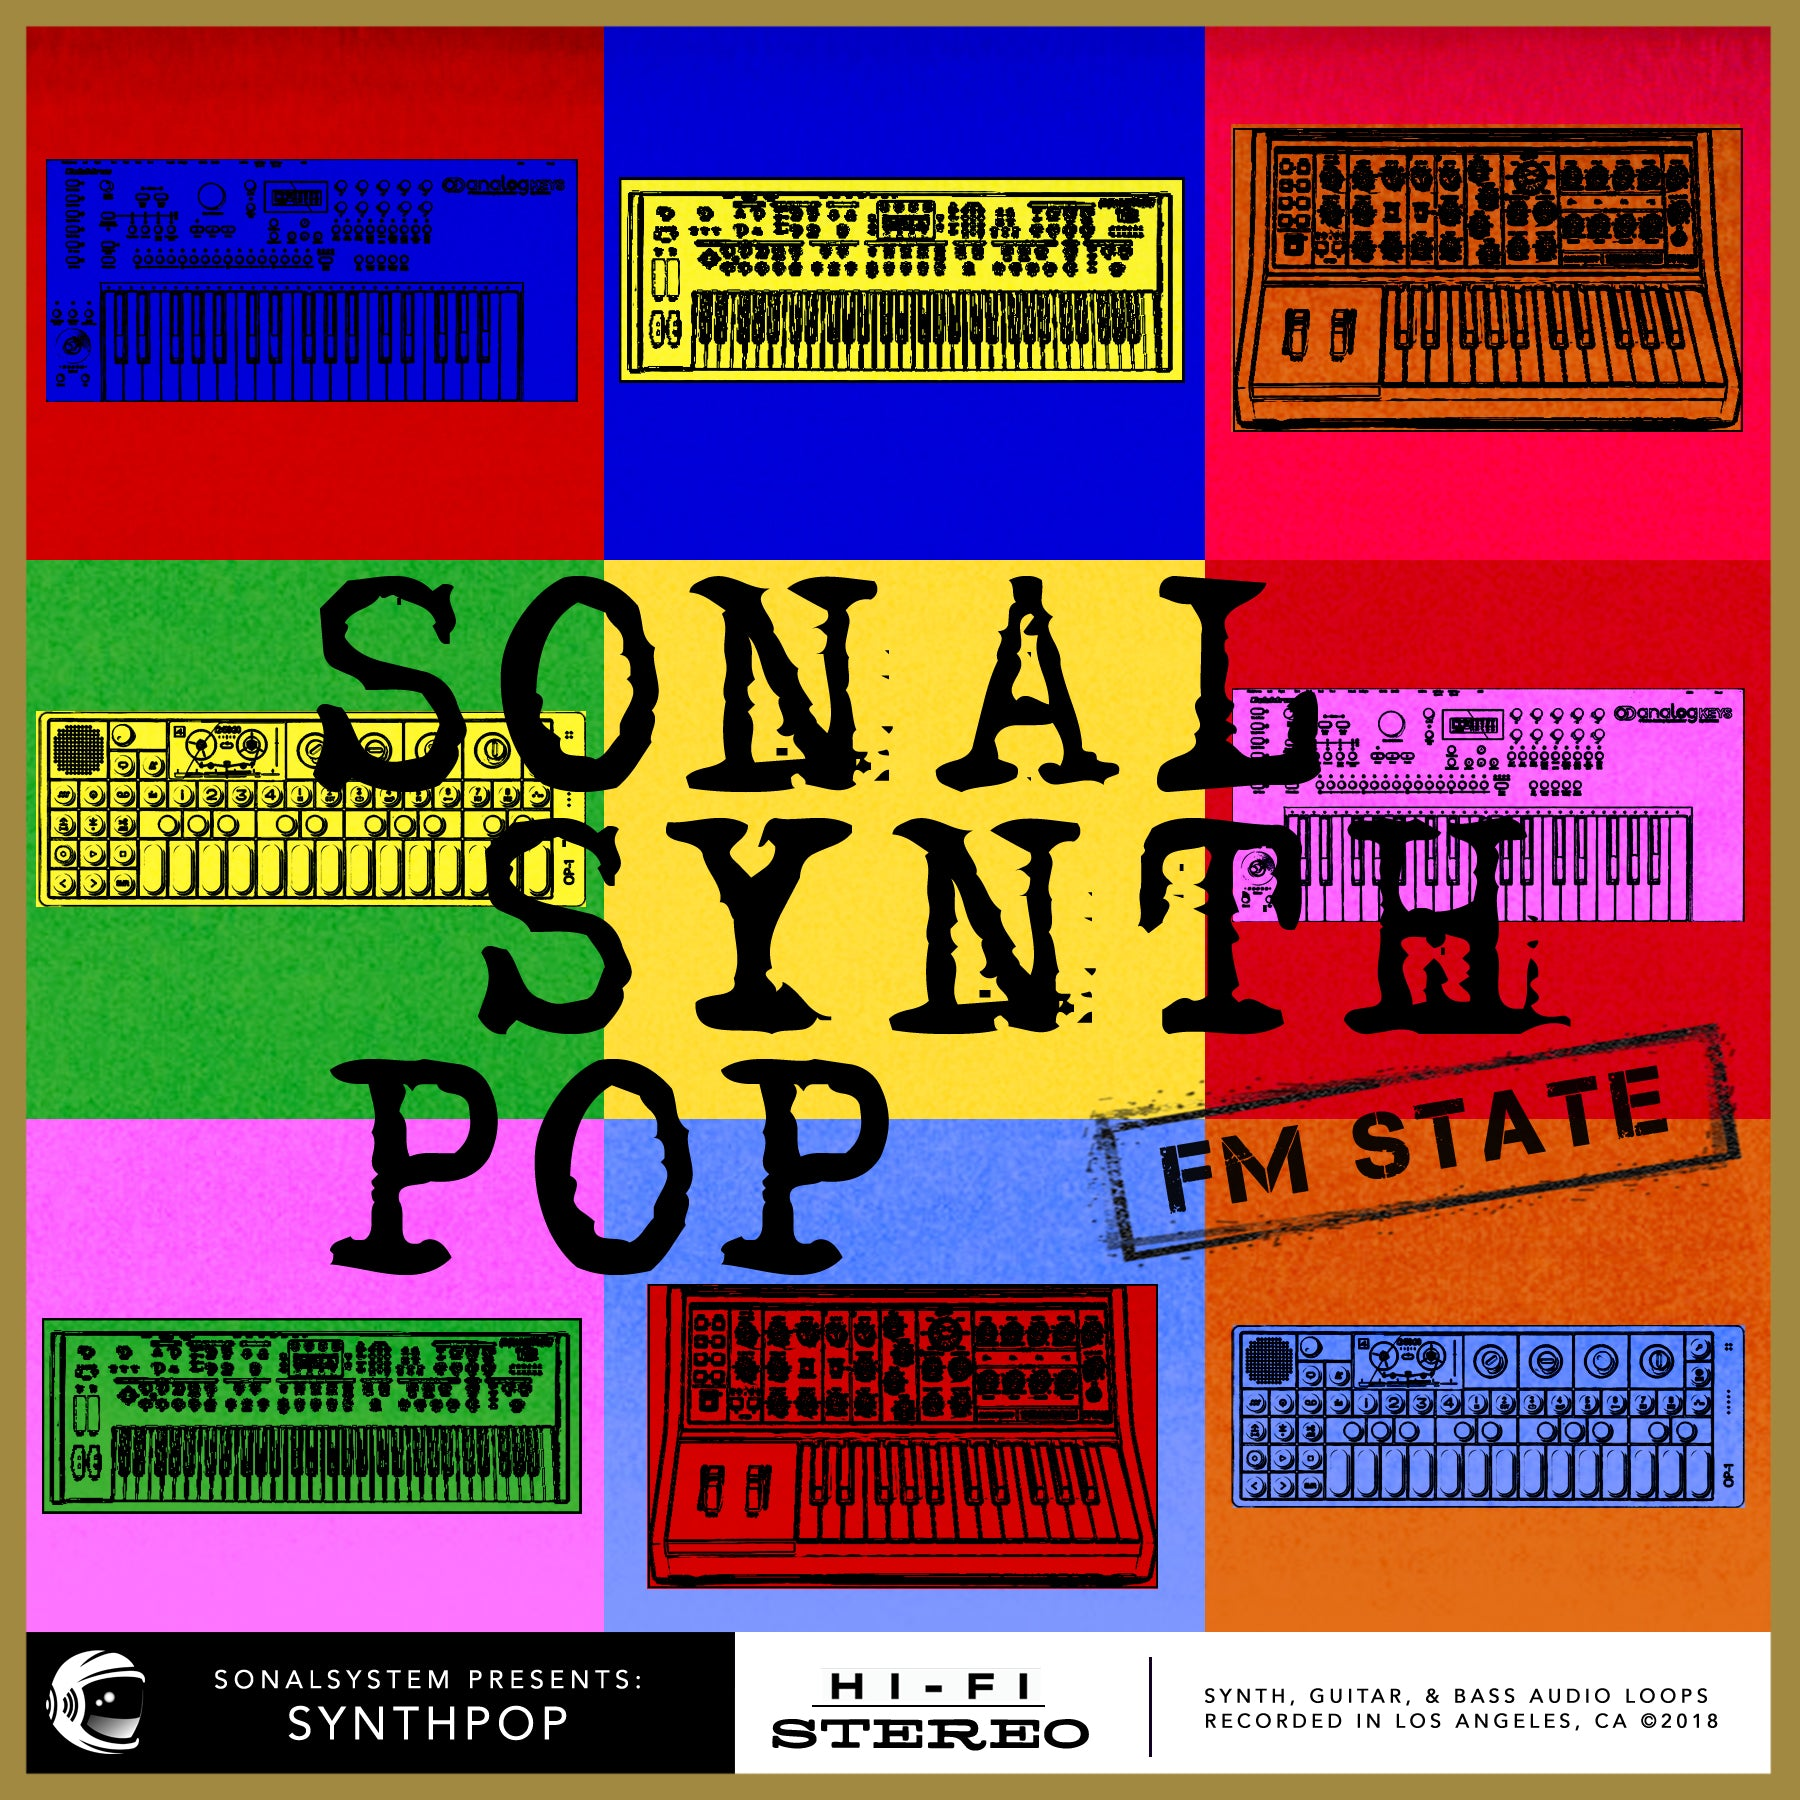 Sonal Synth Pop FM State